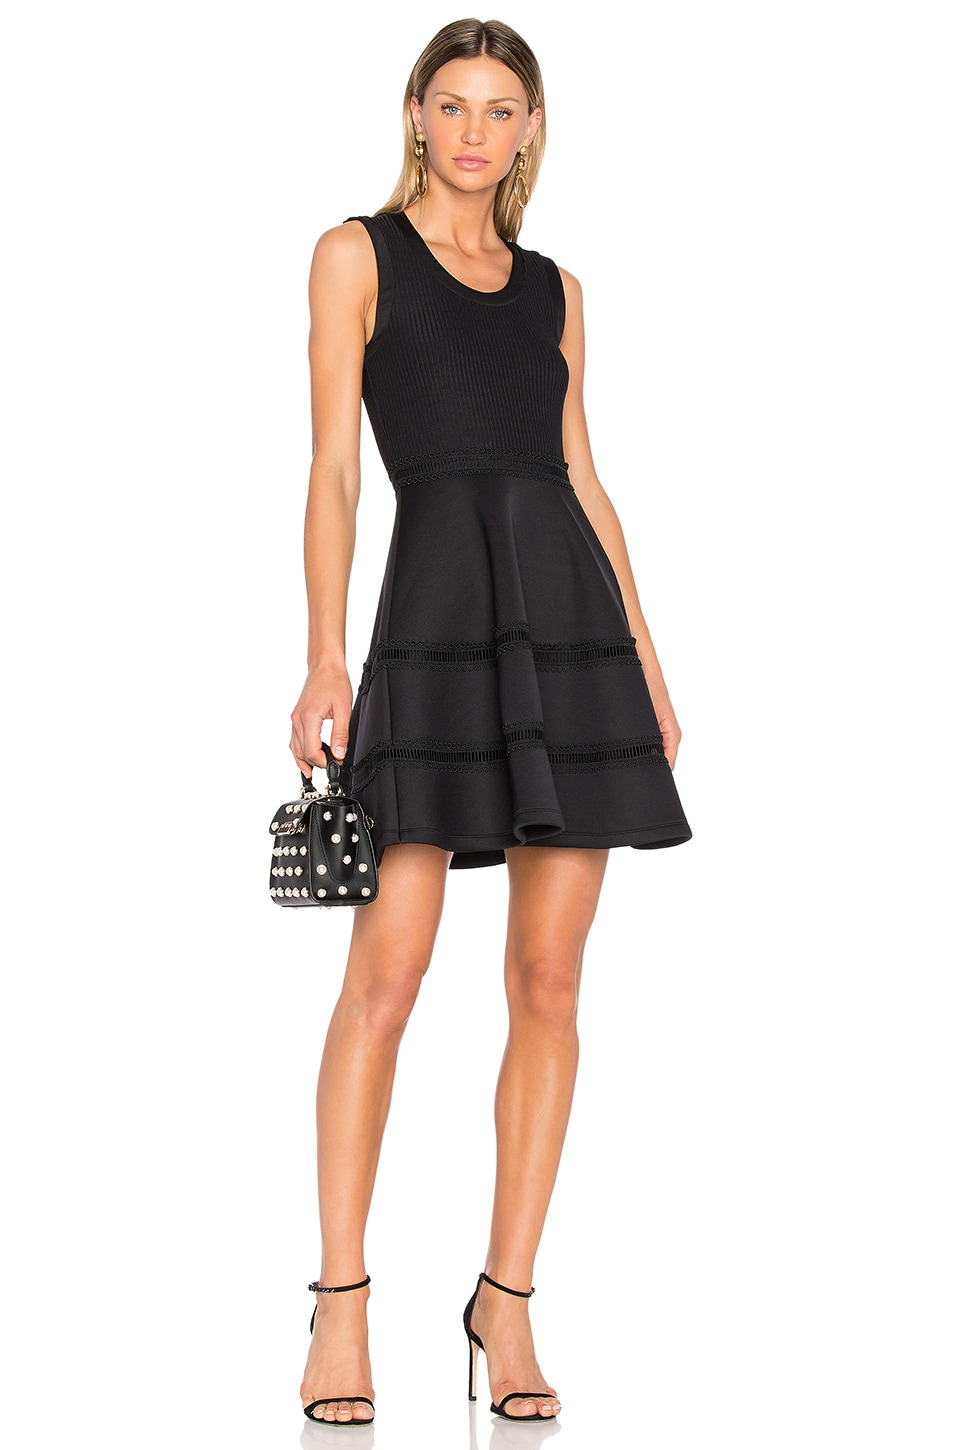 Ruffle Mini Dress by Carven